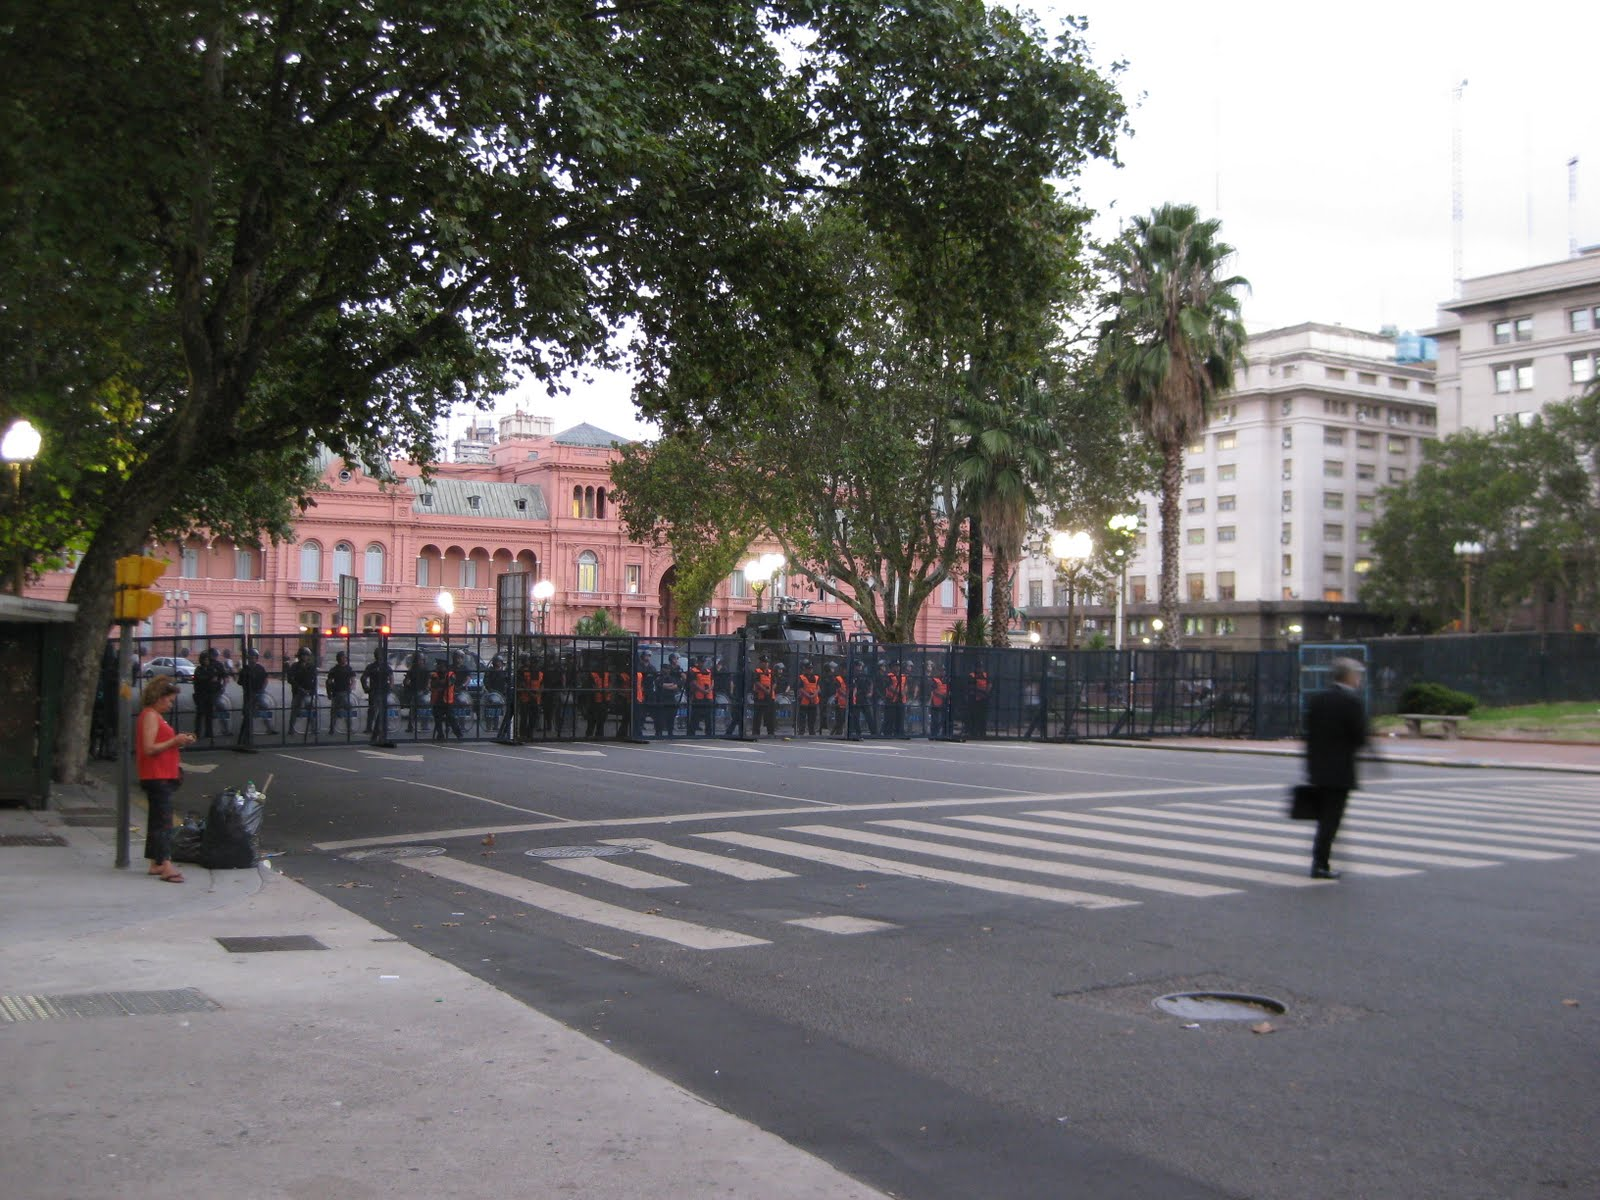 Barricades, ready for protesters (they were peaceful)